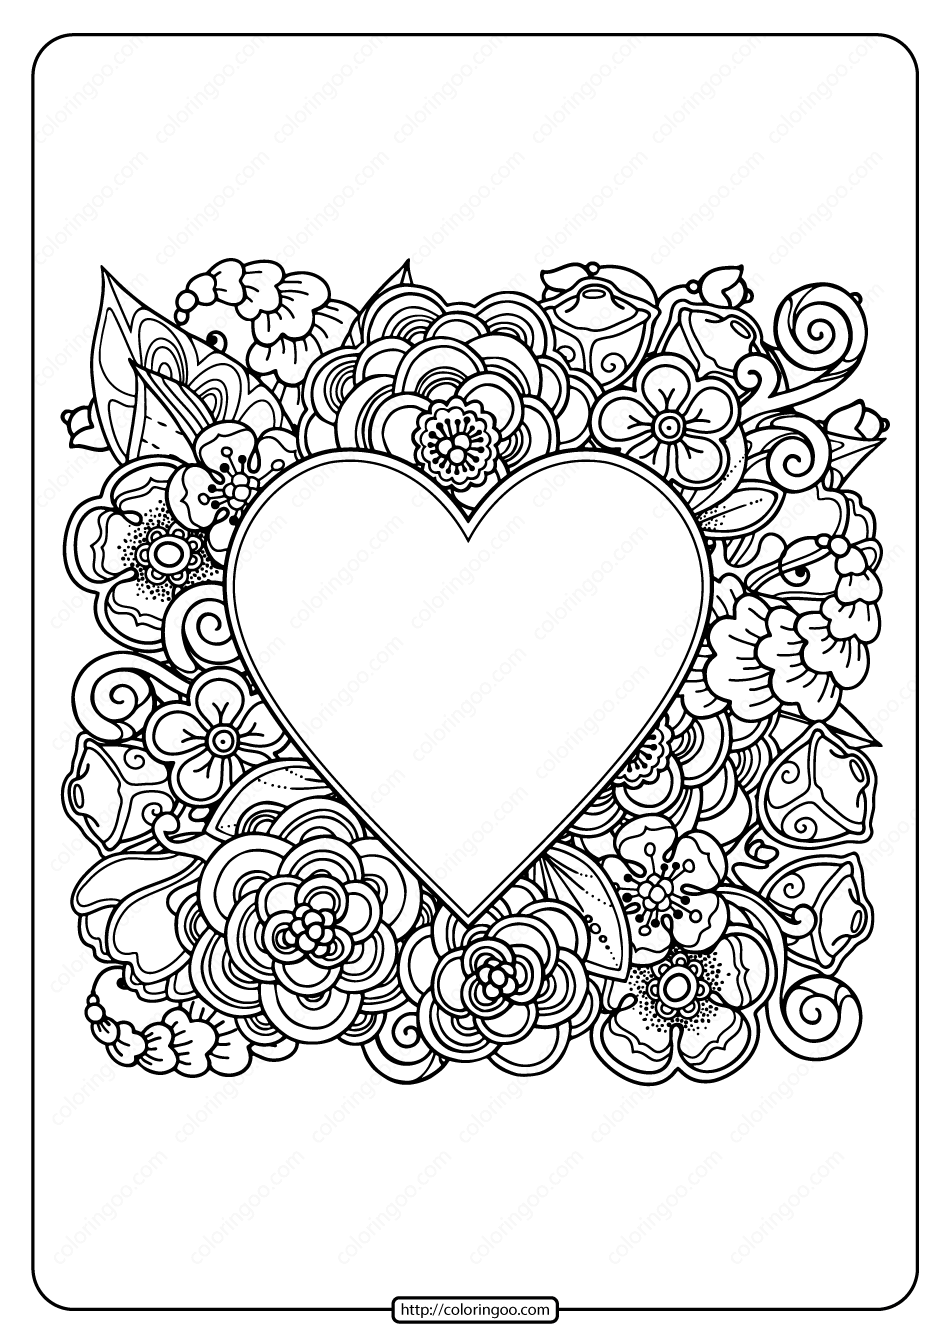 little heart coloring pages bubbly hearts coloring page valentine coloring pages heart coloring pages little